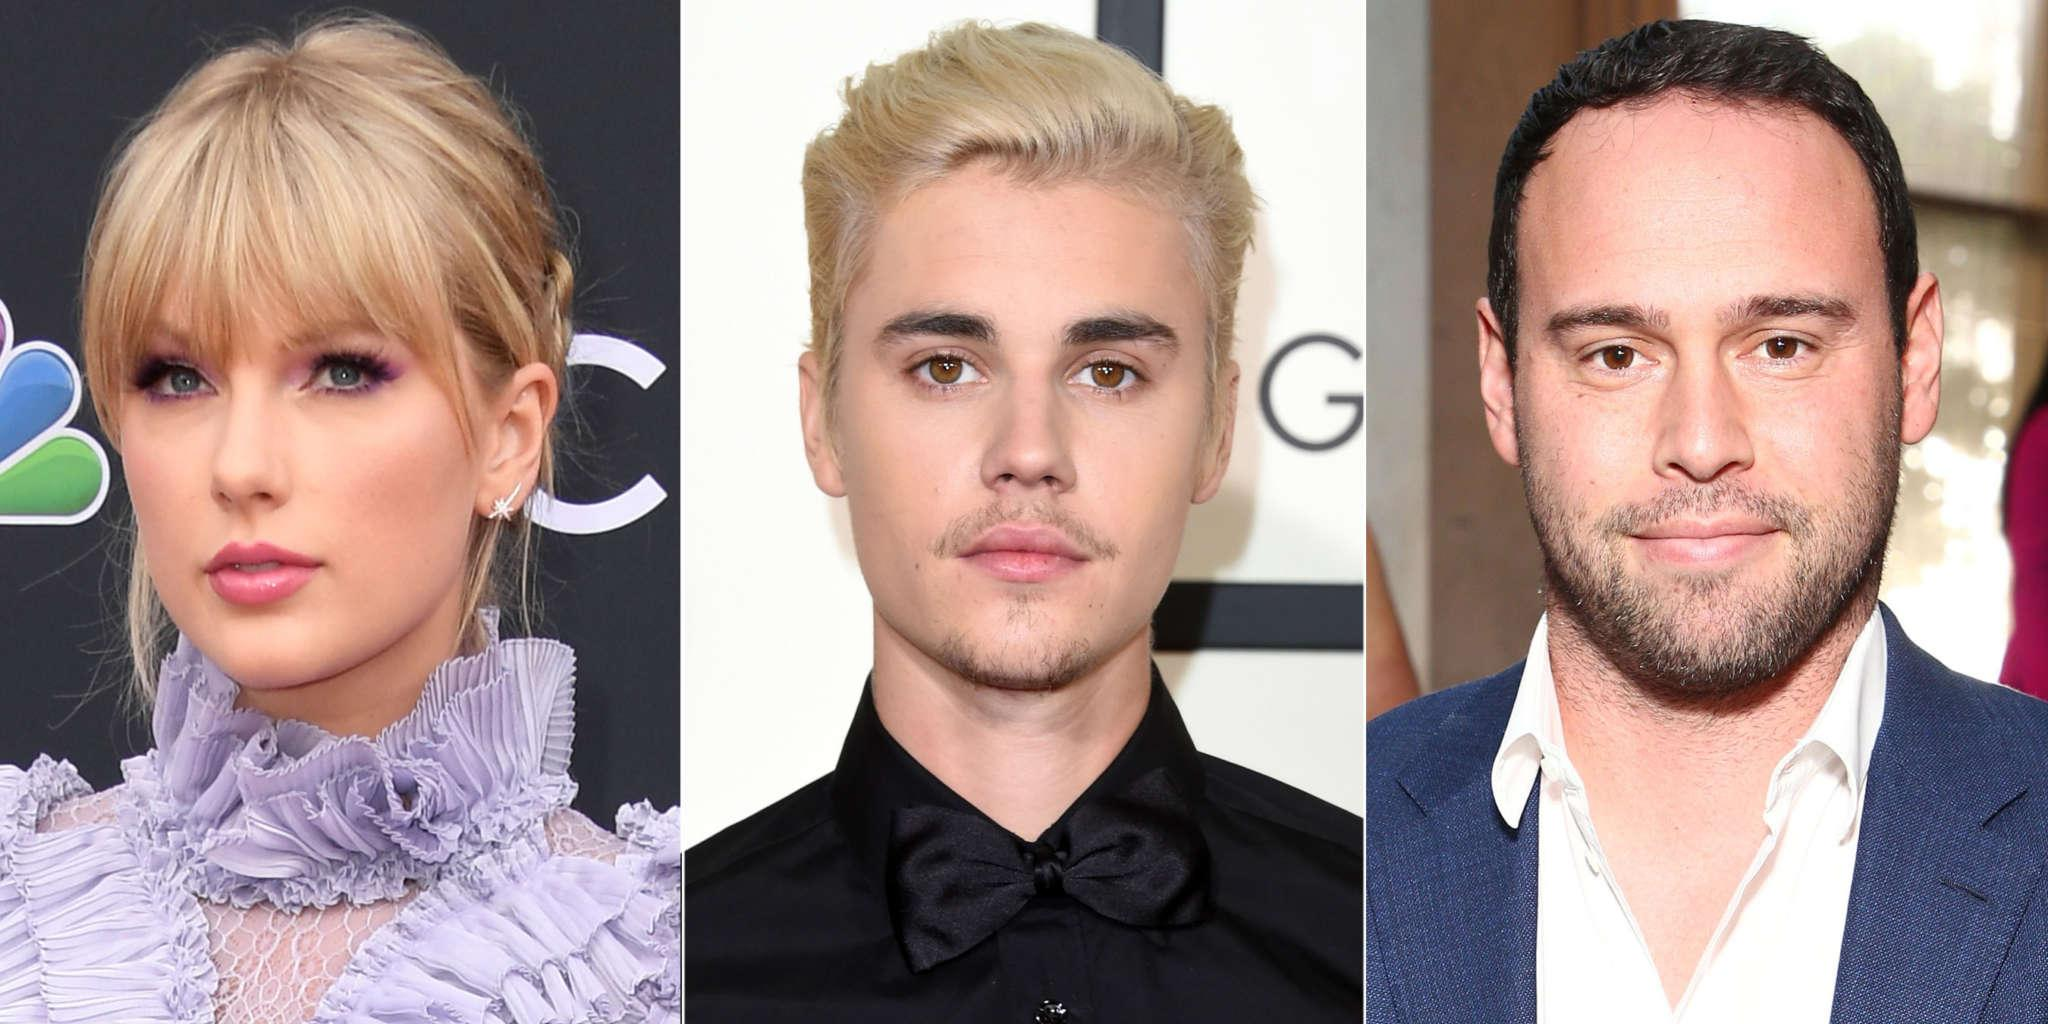 Scooter Braun Seems To Troll Taylor Swift By Teasing Justin Bieber Album Just Hours After She Announces Surprise Album Release!